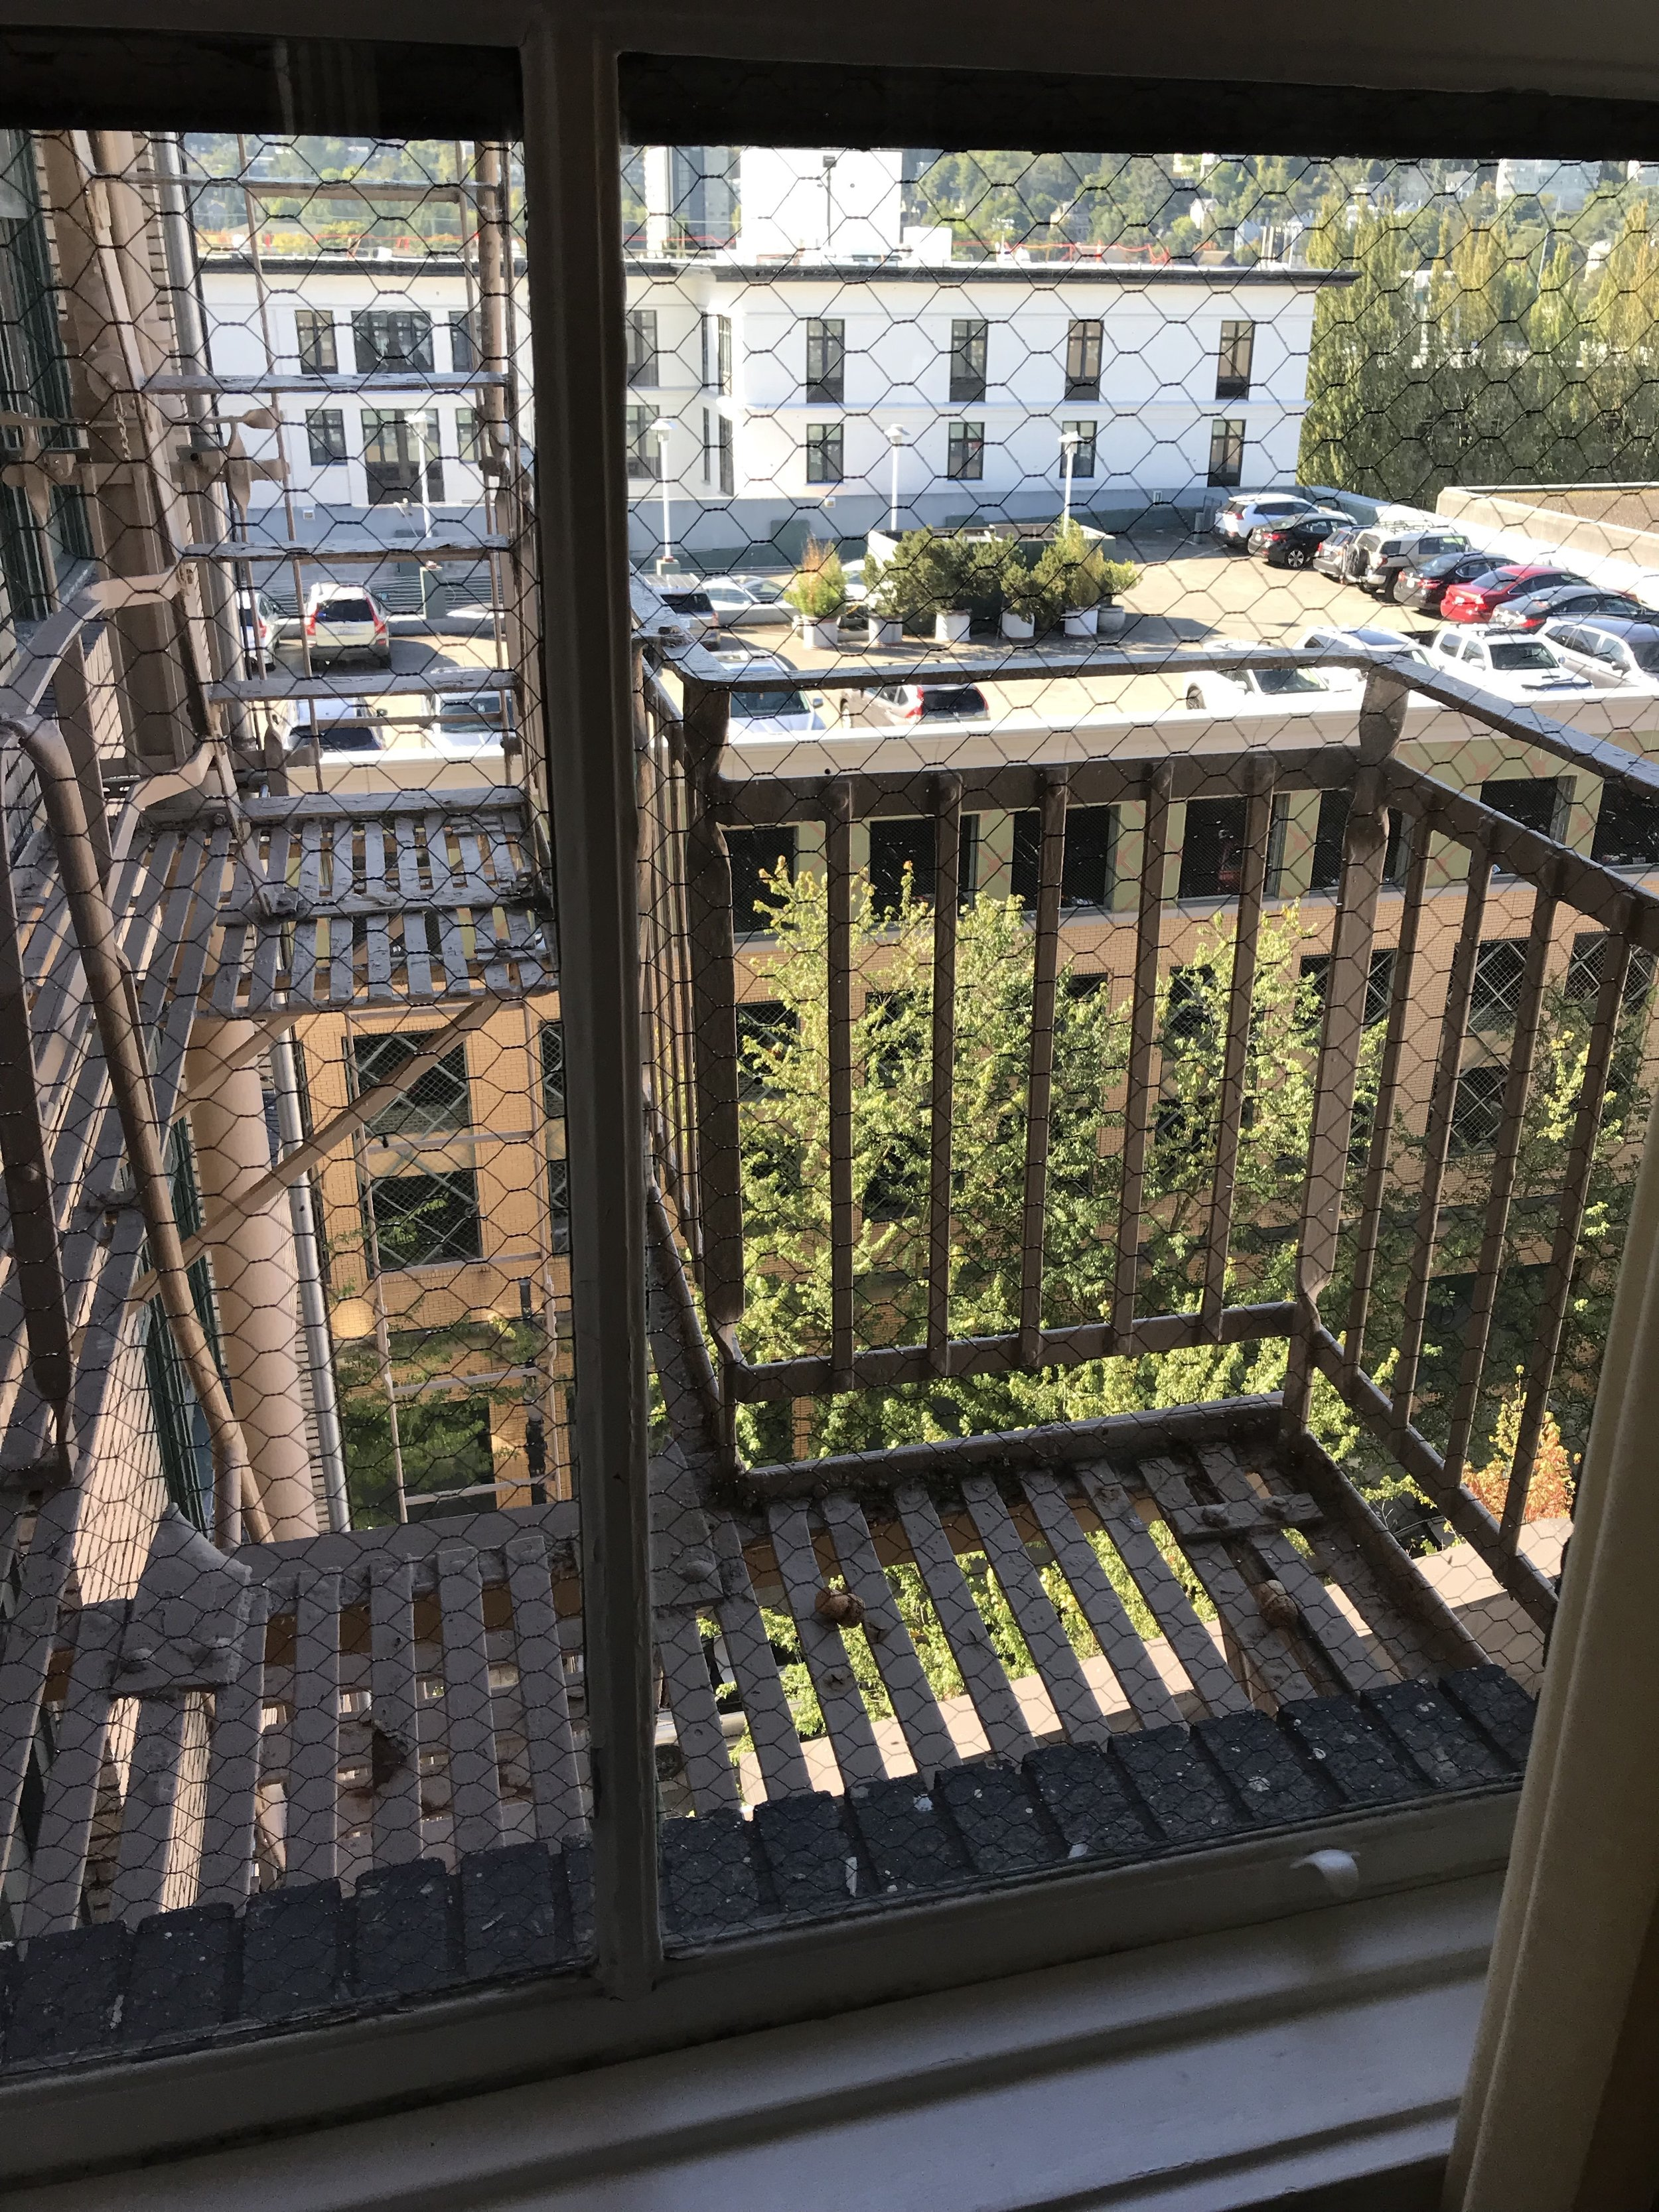 View from Rm 722, Hotel Deluxe, Portland, Oregon, October 5, 2017.